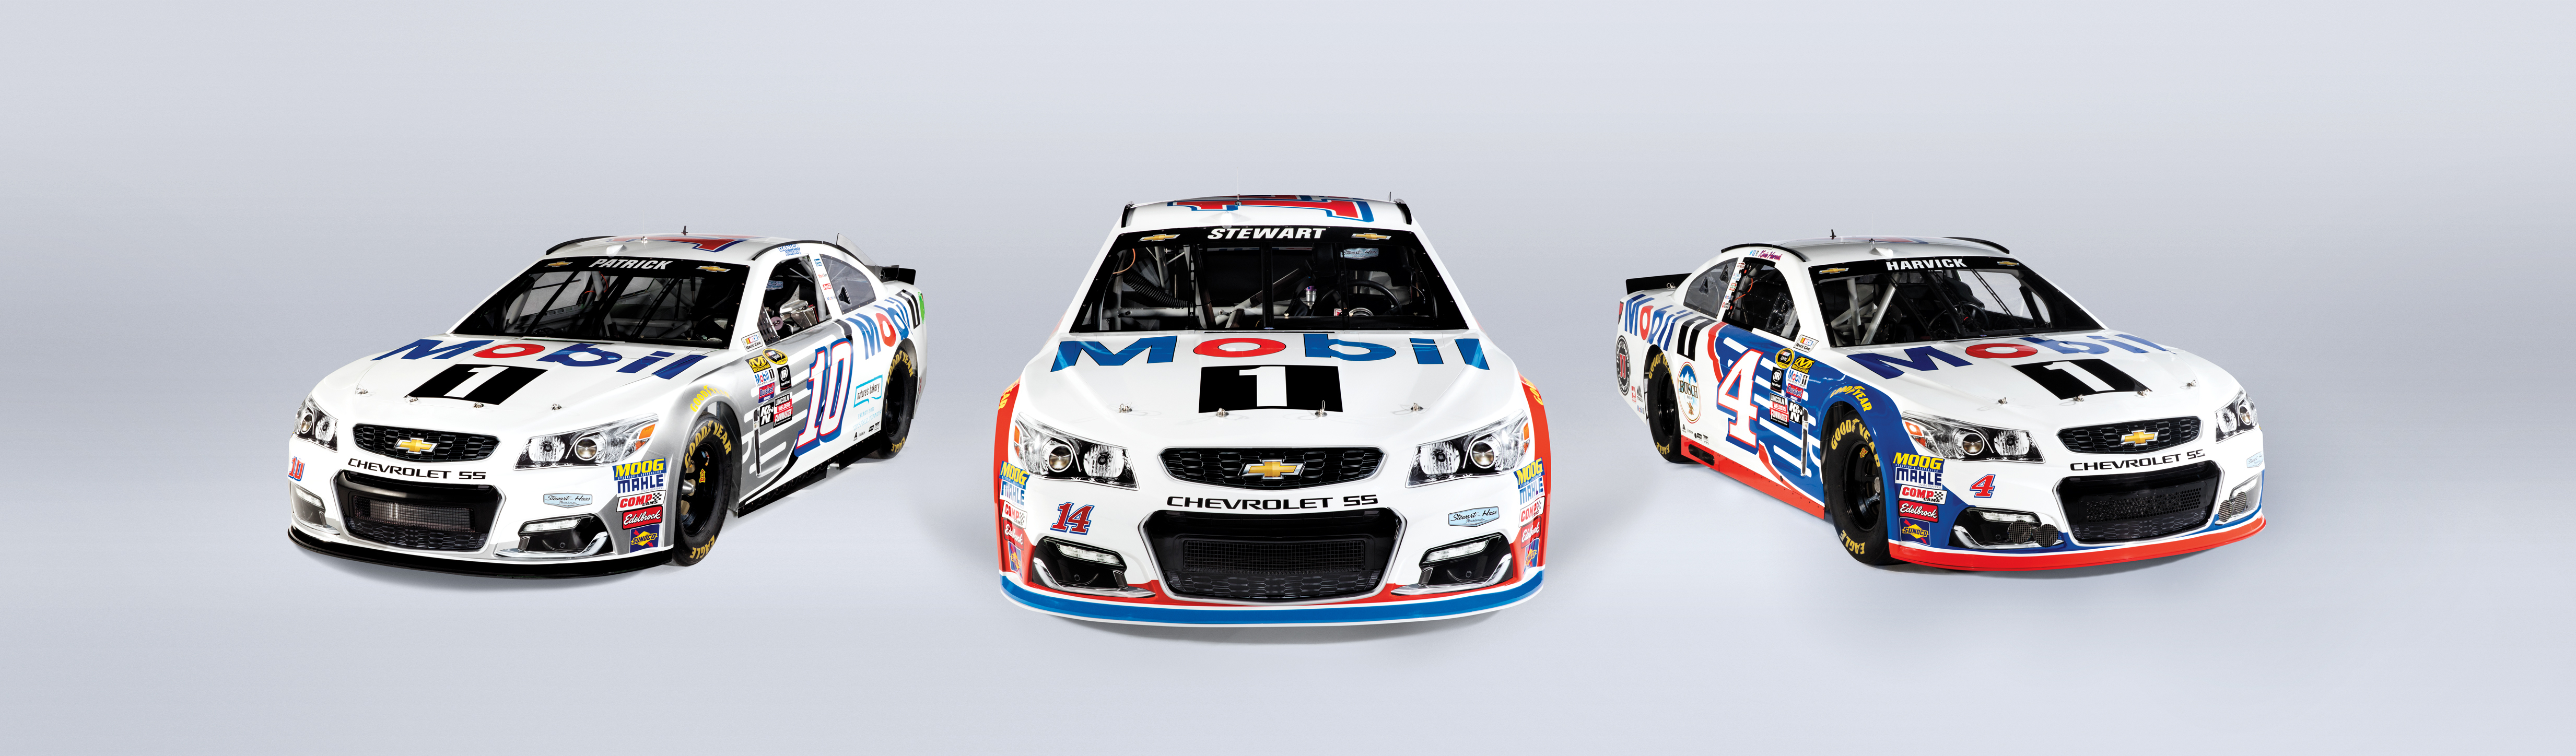 Mobil Going Three Wide With Stewart Haas Racing In